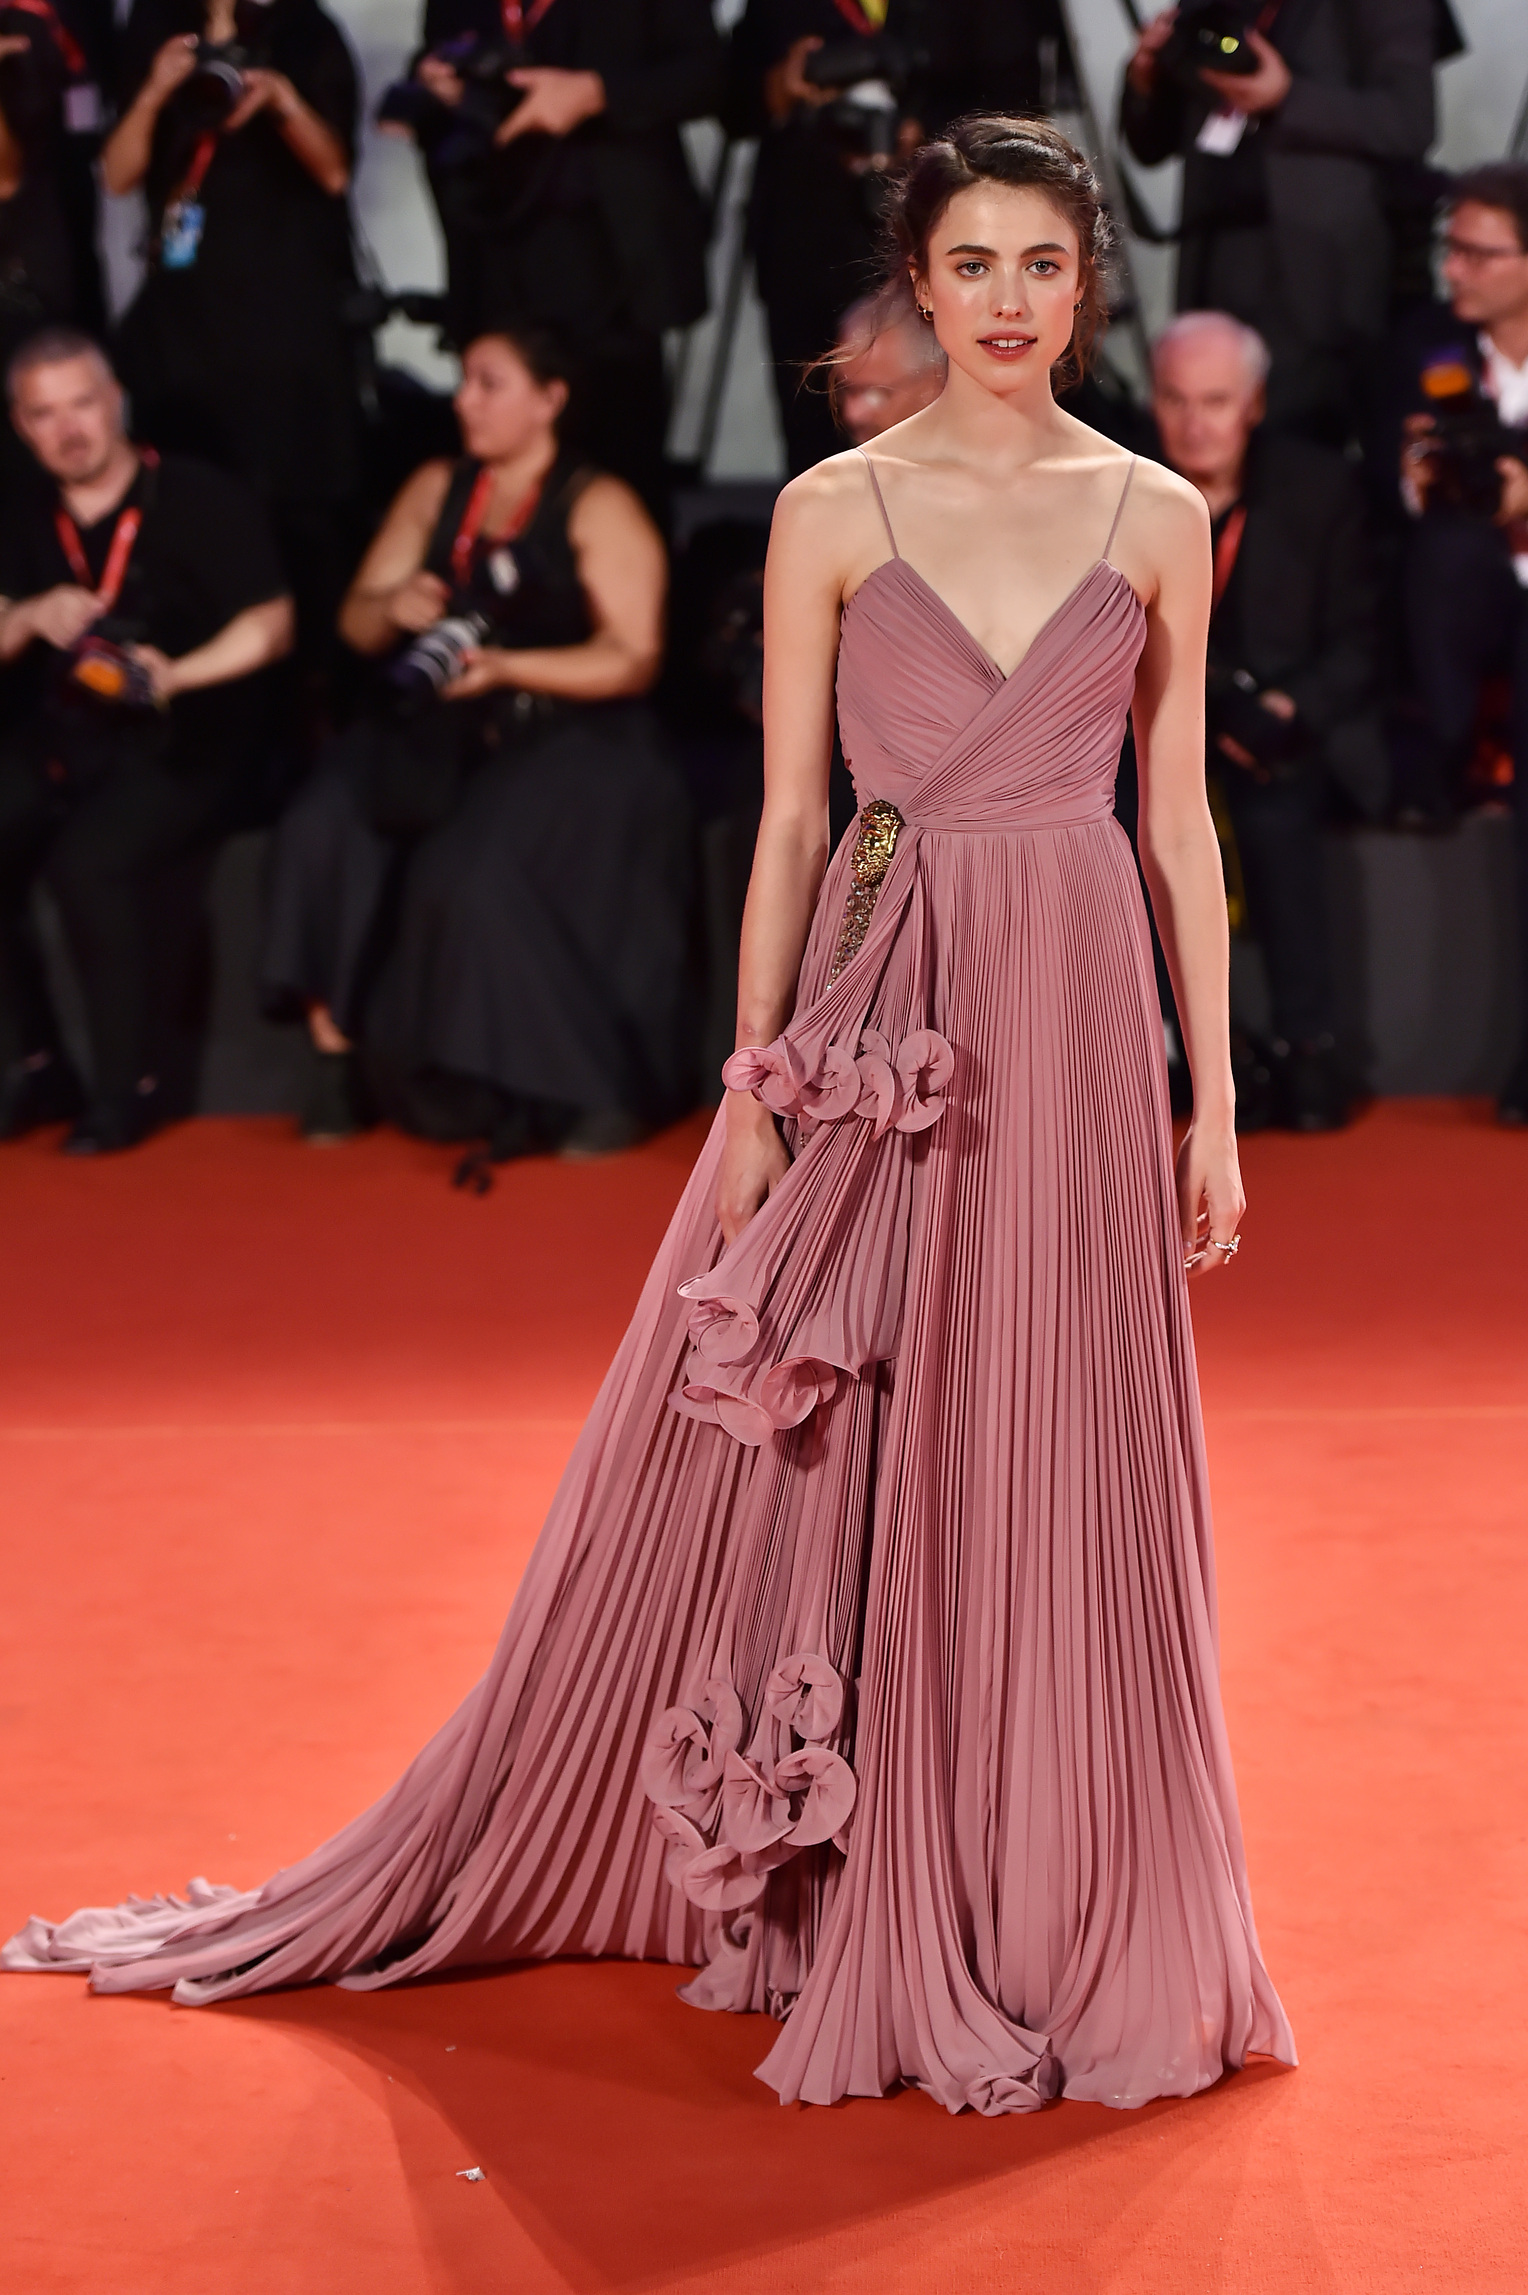 VENICE, ITALY - AUGUST 30: Margaret Qualley walks the red carpet ahead of the